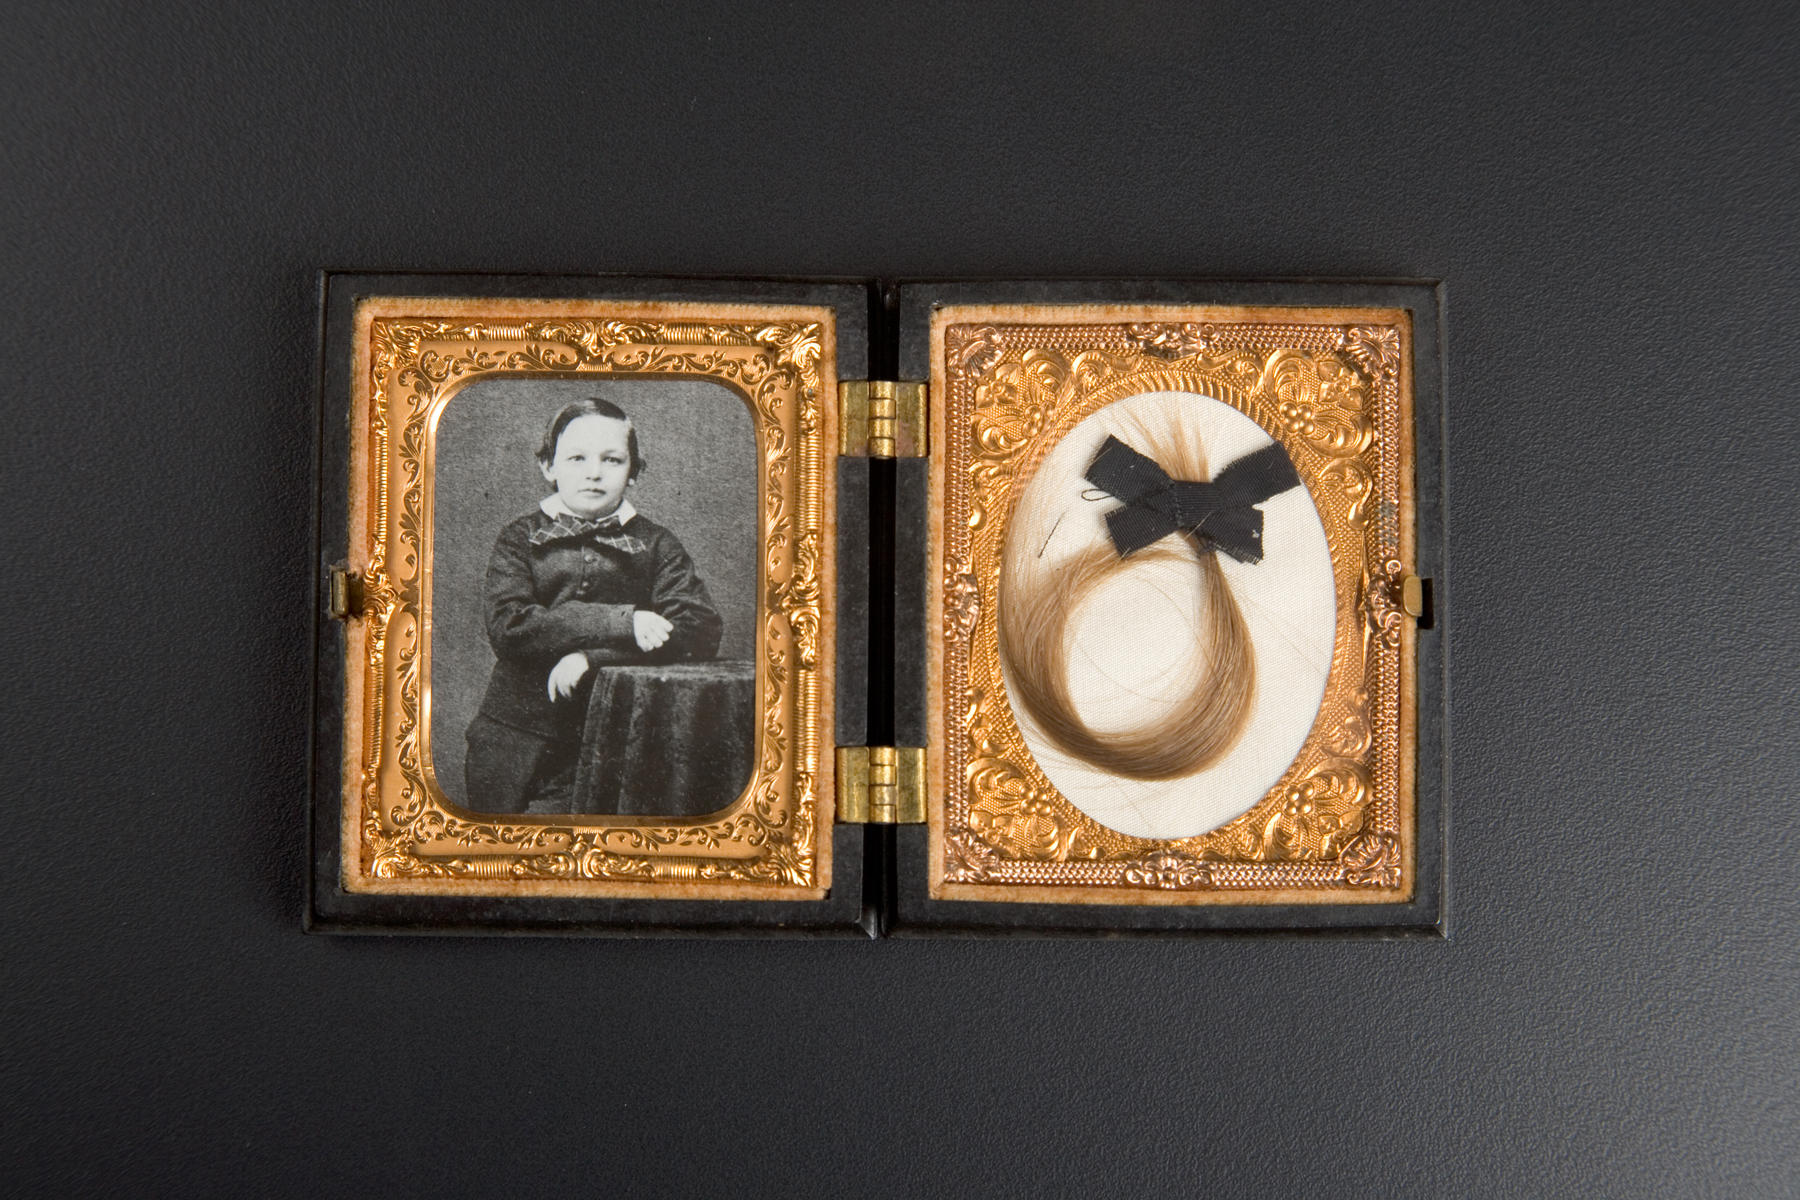 8f9fe10fffb54 A photo of Willie Lincoln and a lock of his hair, one of 1,400 items in the  Taper Collection. Willie died in the White House during Lincoln's  presidency.